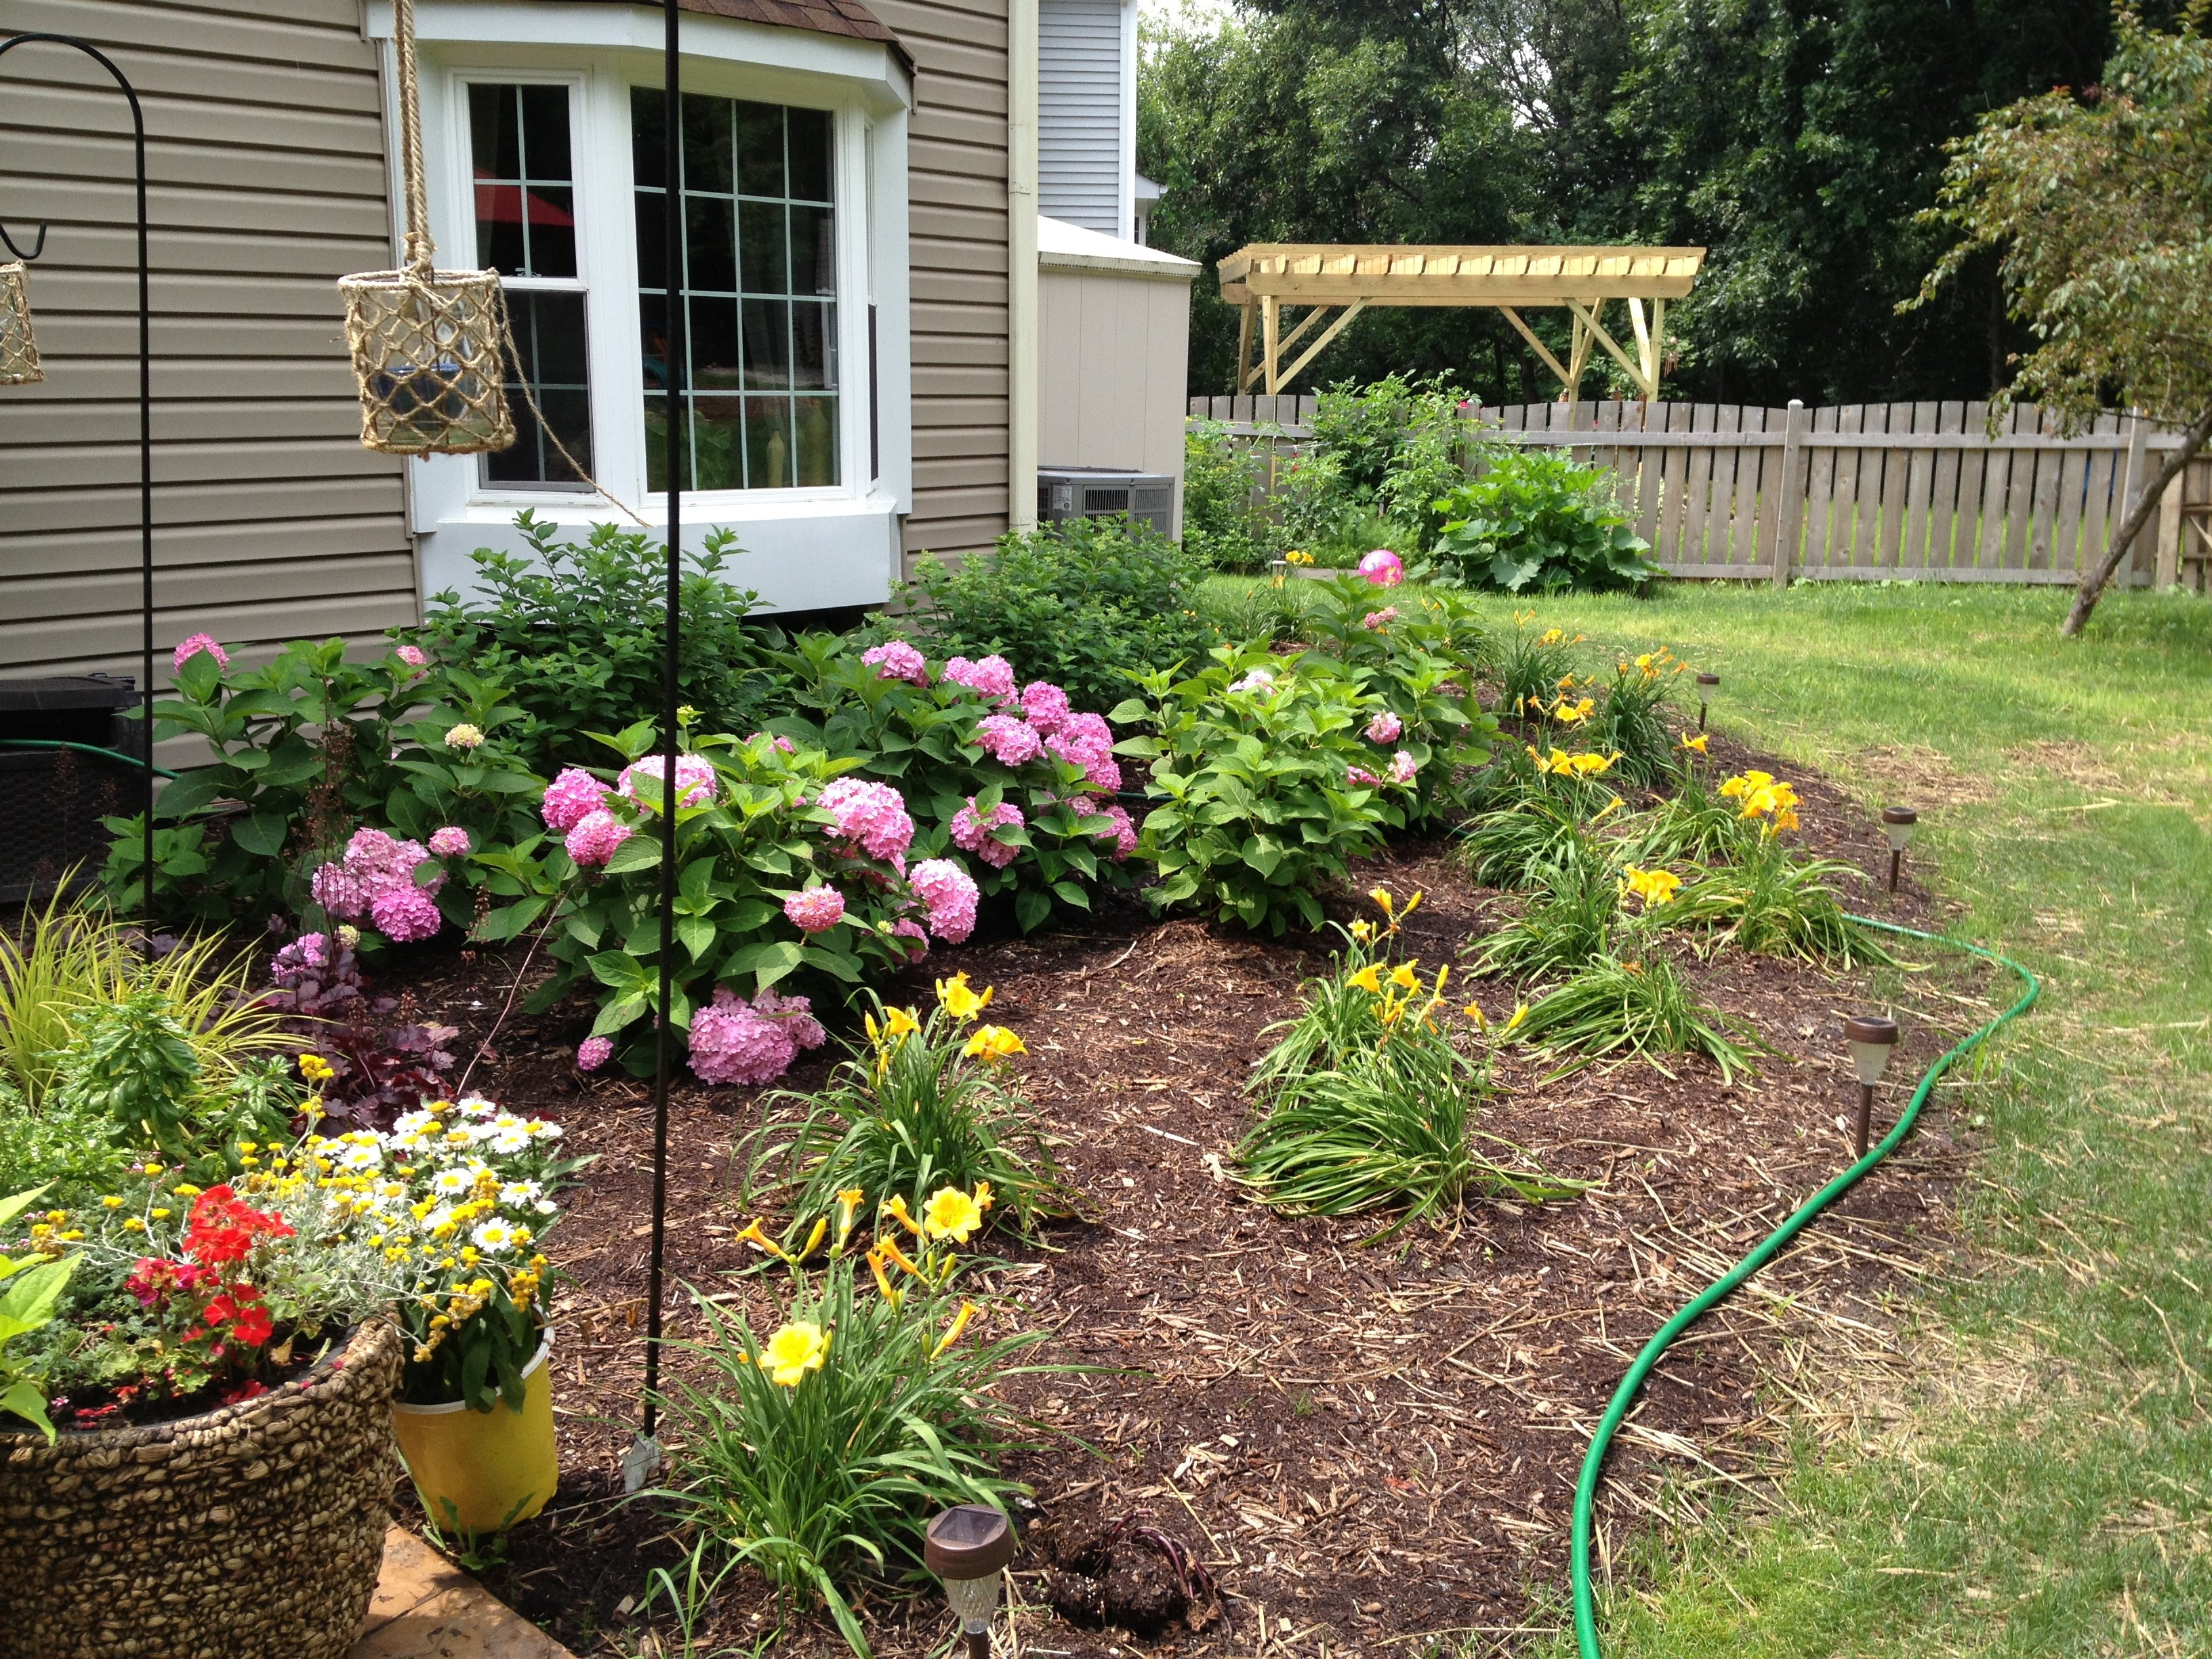 JWB Outdoor Solutions, Landscaping Services